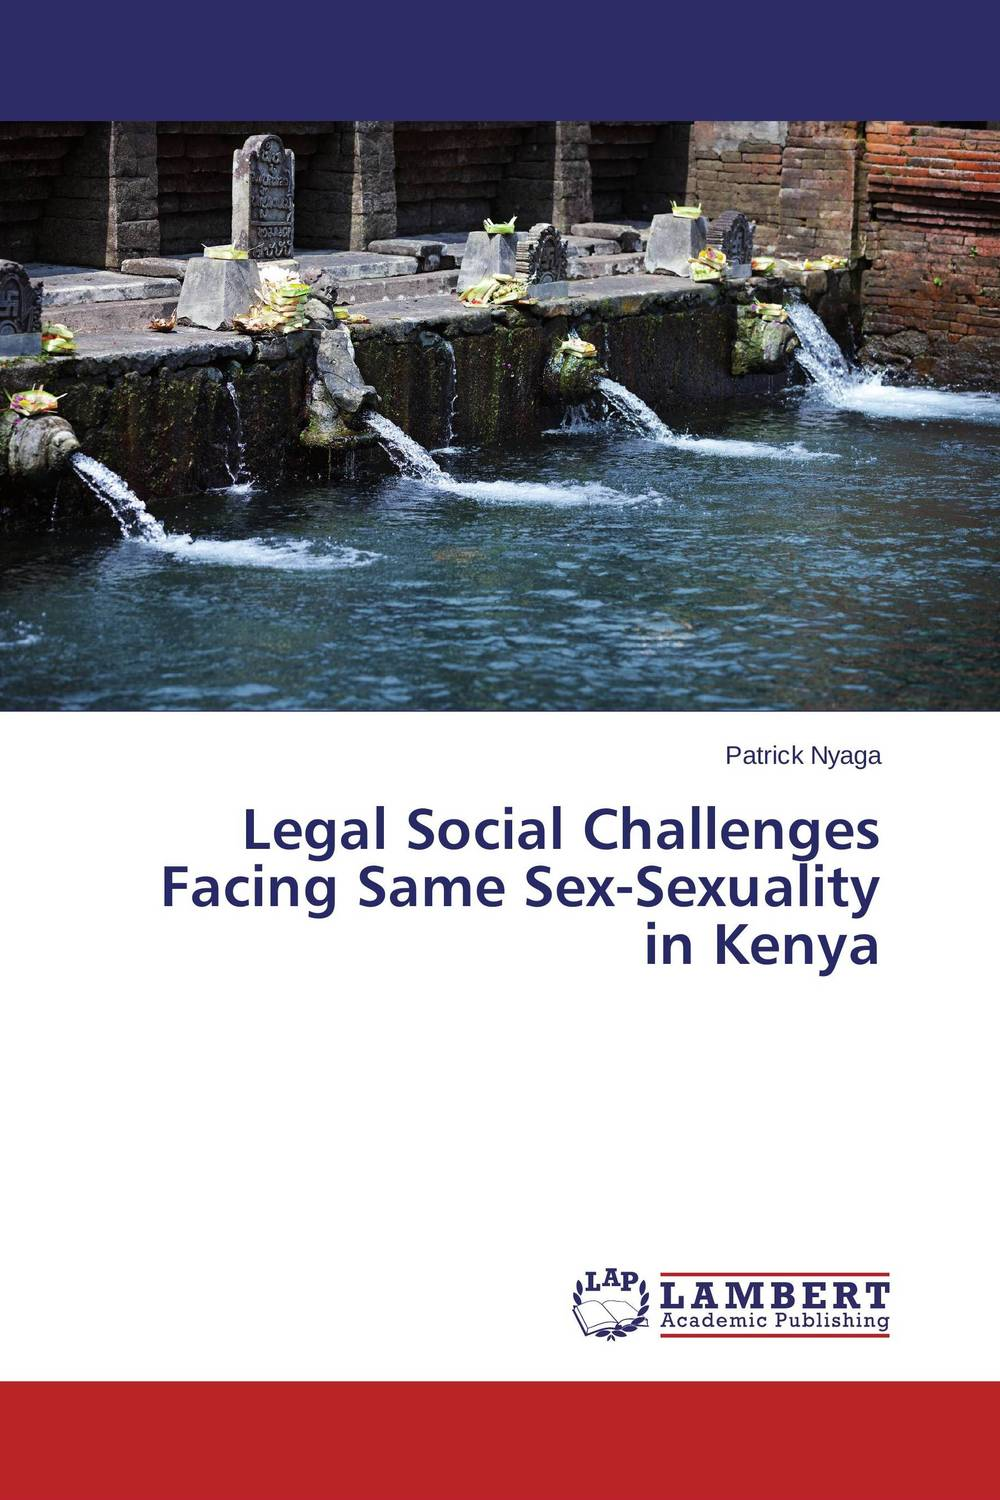 Legal Social Challenges Facing Same Sex-Sexuality in Kenya miguel delatorre a a lily among the thorns imagining a new christian sexuality